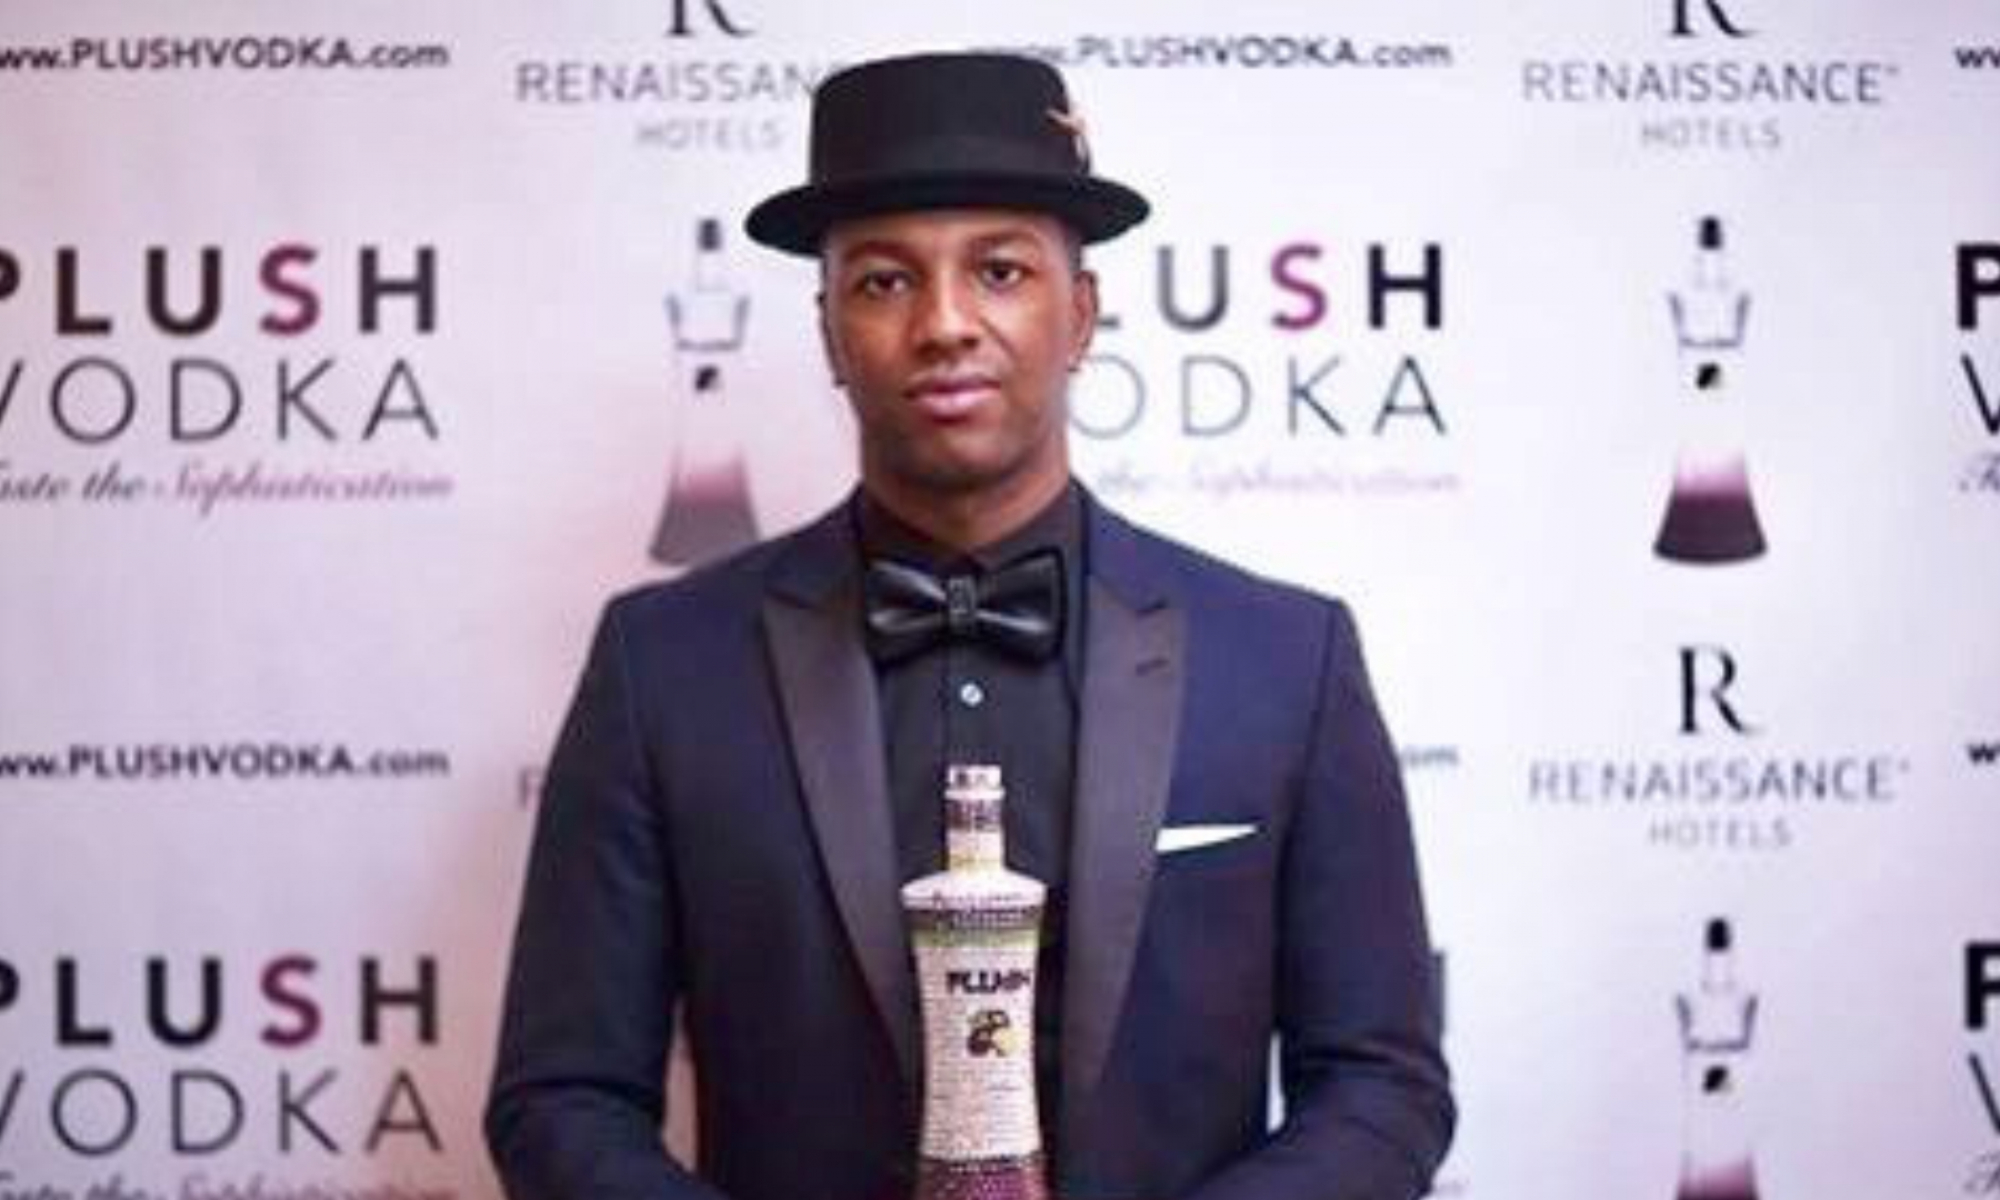 PLUSH Vodka Founder & Owner Malcolm Hale, Making A Mark in the Spirits & Wine Industry